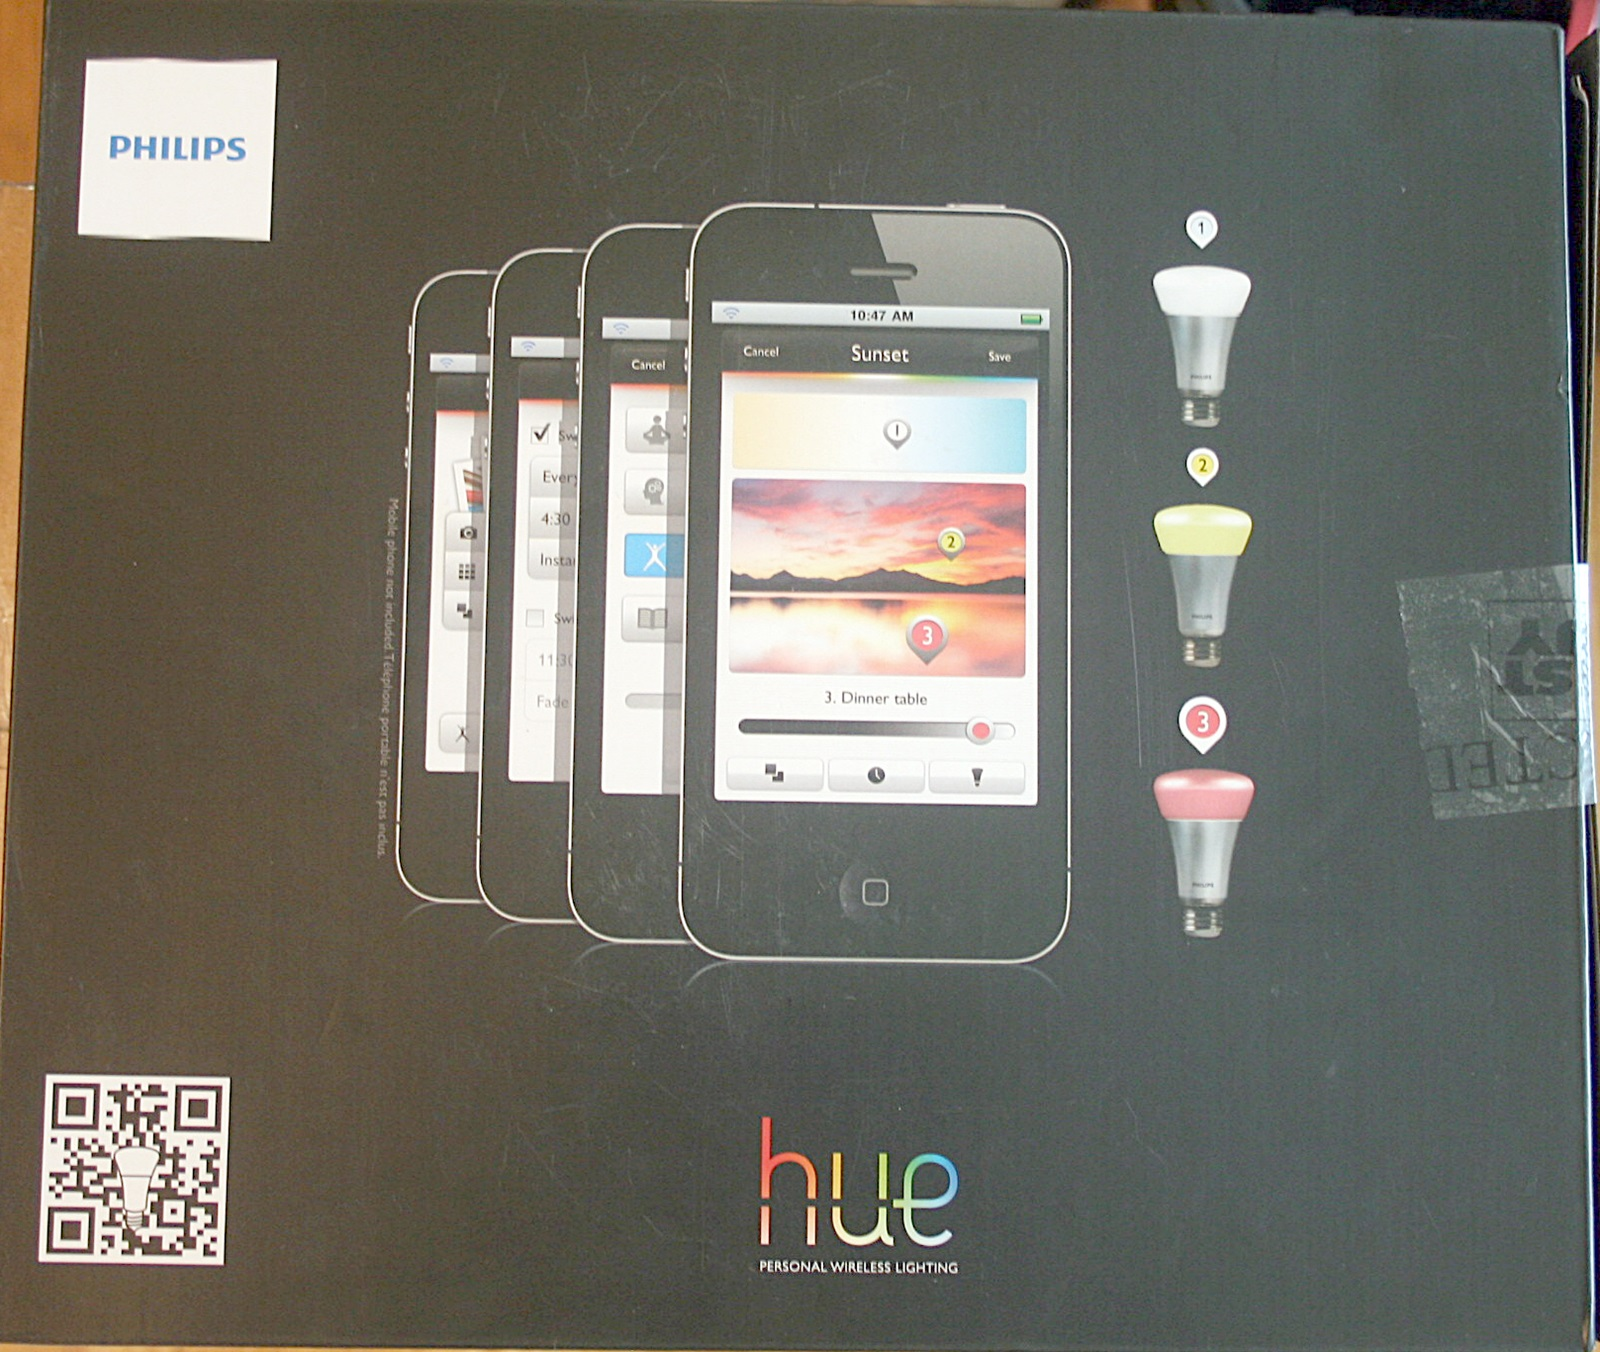 Philips Hue Examples Philips Hue A19 9w Personal Wireless Lighting Starter Kit